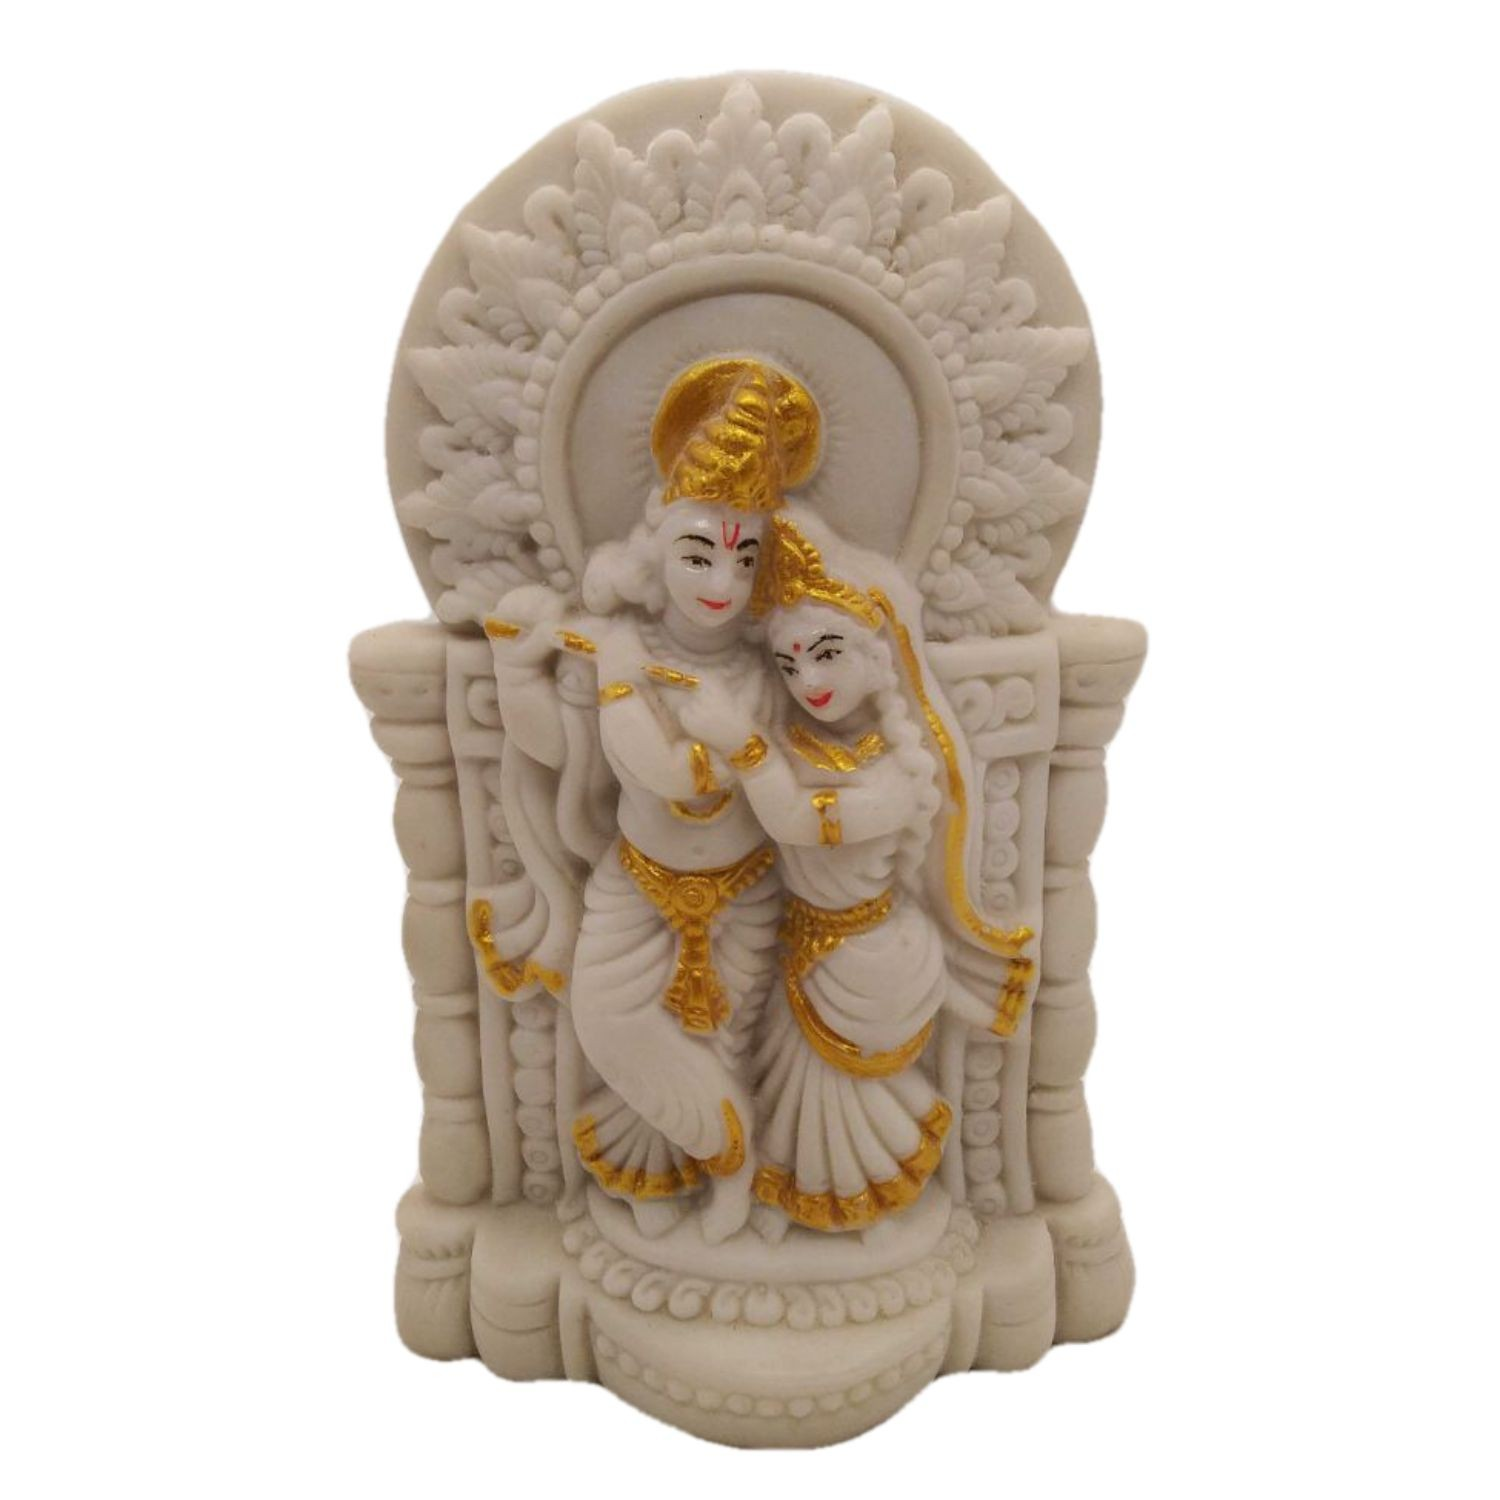 India Meets India Handicraft Marble Radha Krishna Statue, Radha Krishna Showpiece Set of 2, Home Décor, Best Gifting Made By Awarded Indian Artisan